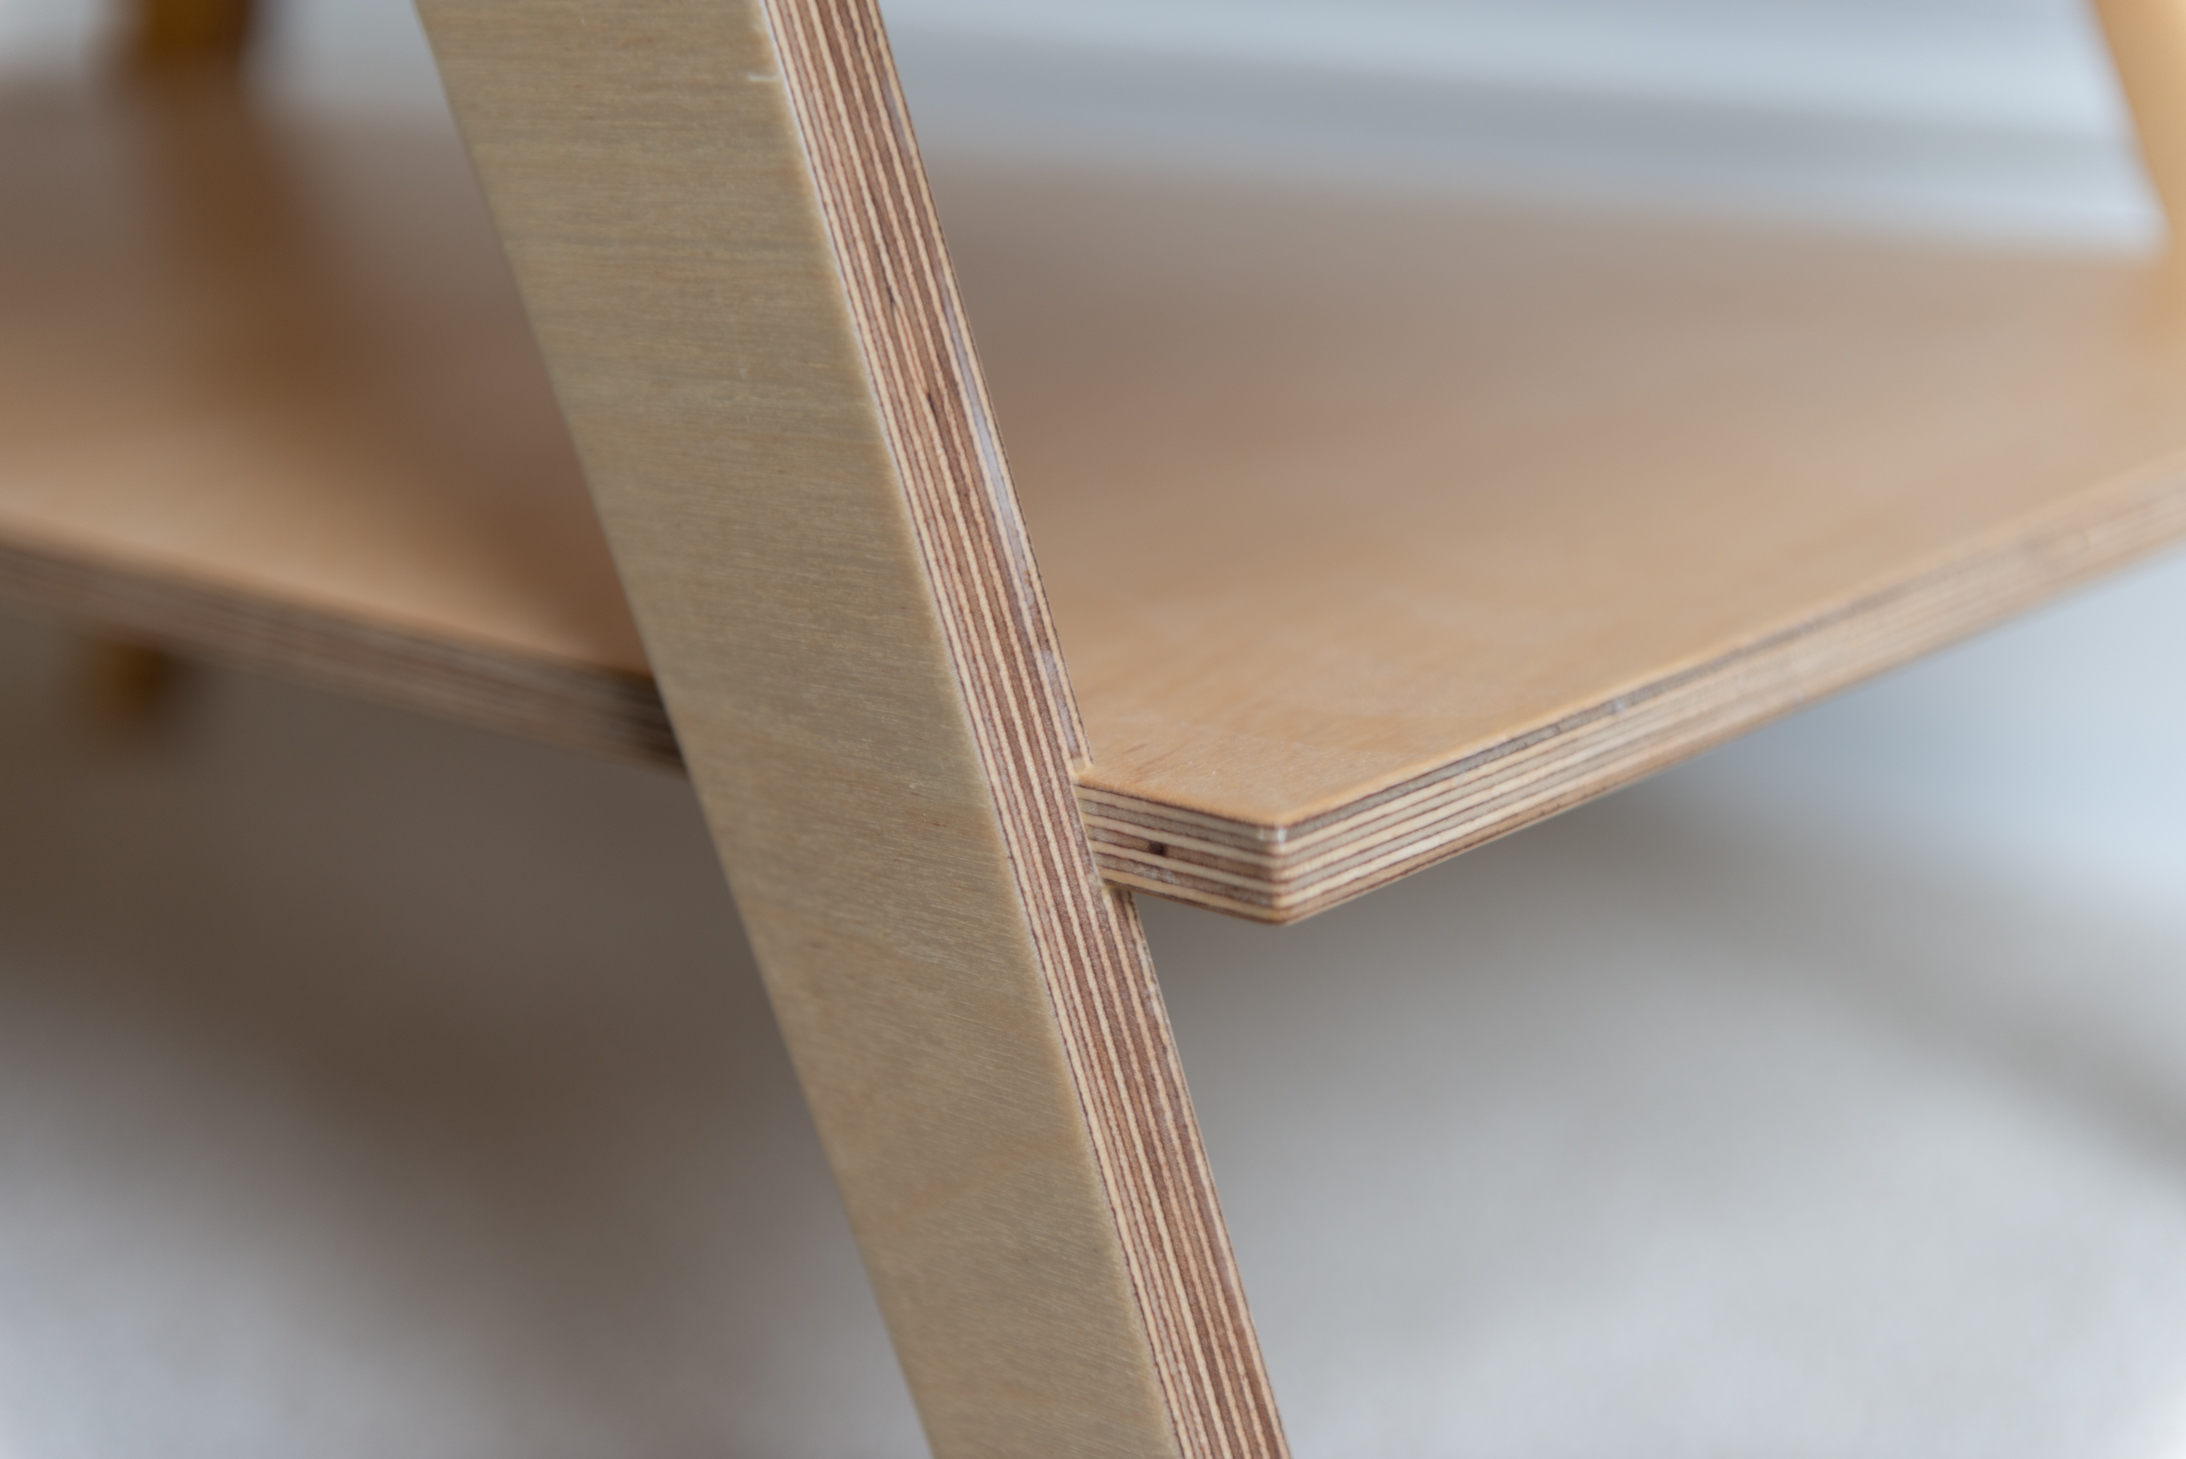 plywood coffee table shelf detail